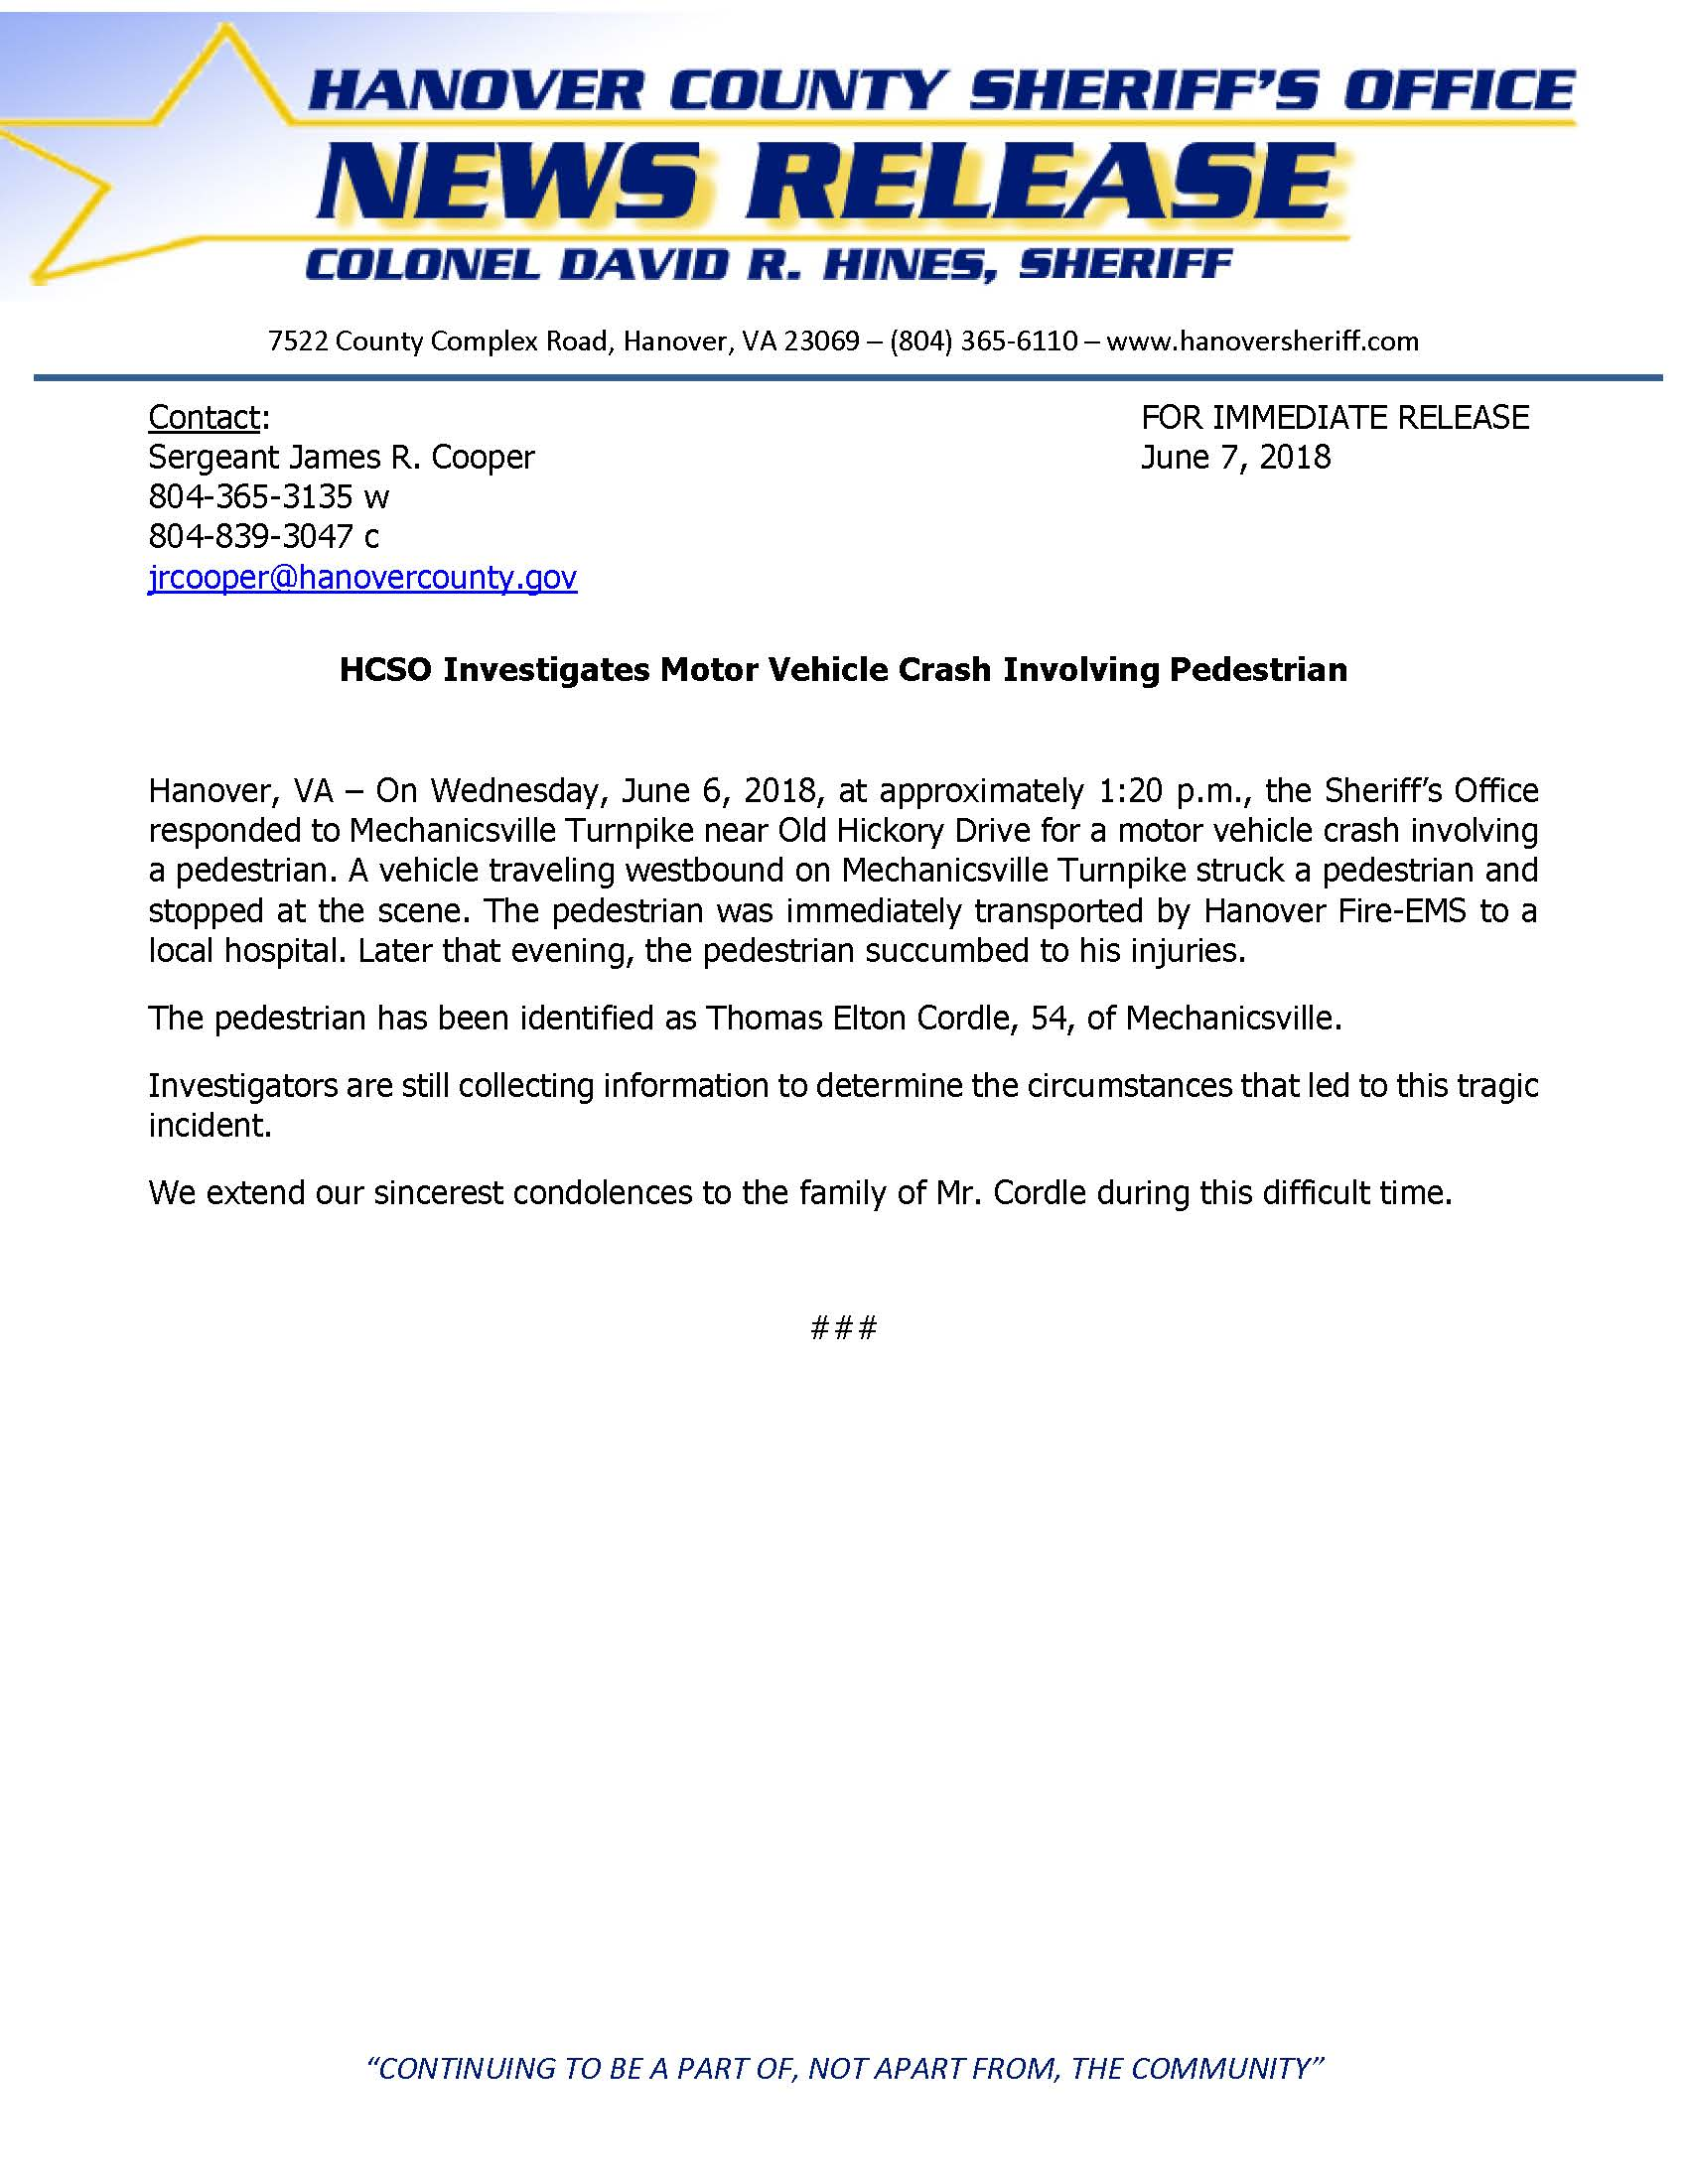 HCSO - Motor Vehicle Crash Involving Pedestrian- June 6, 2018